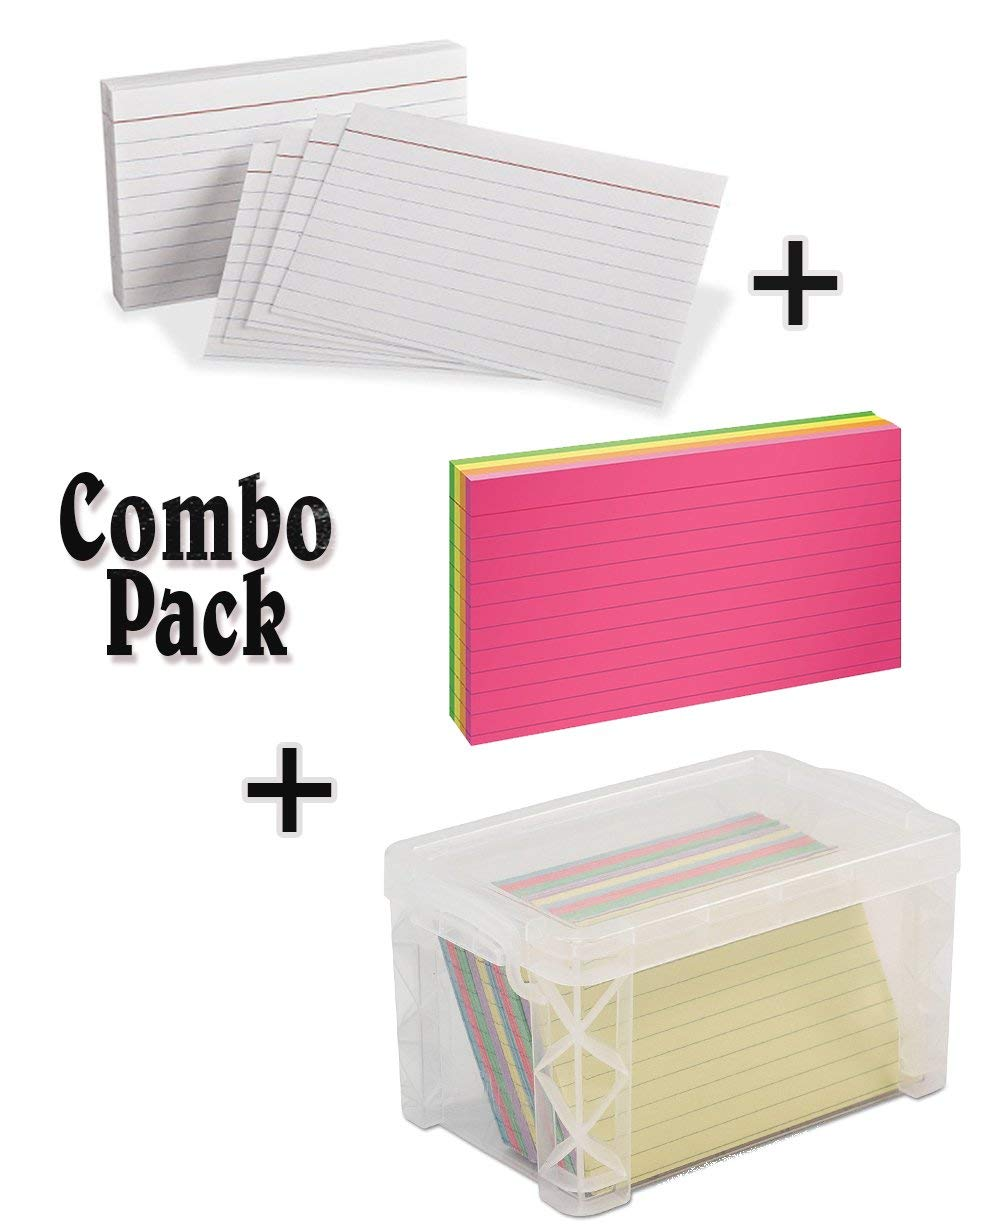 "Index Card Box, Clear 3"" x 5"" With Neon Index Cards, 3"" x 5"", Ruled, Assorted Colors, 100 Per Pack With Heavyweight Ruled Index Cards, 3"" x 5"", White, 100 Per Pack"